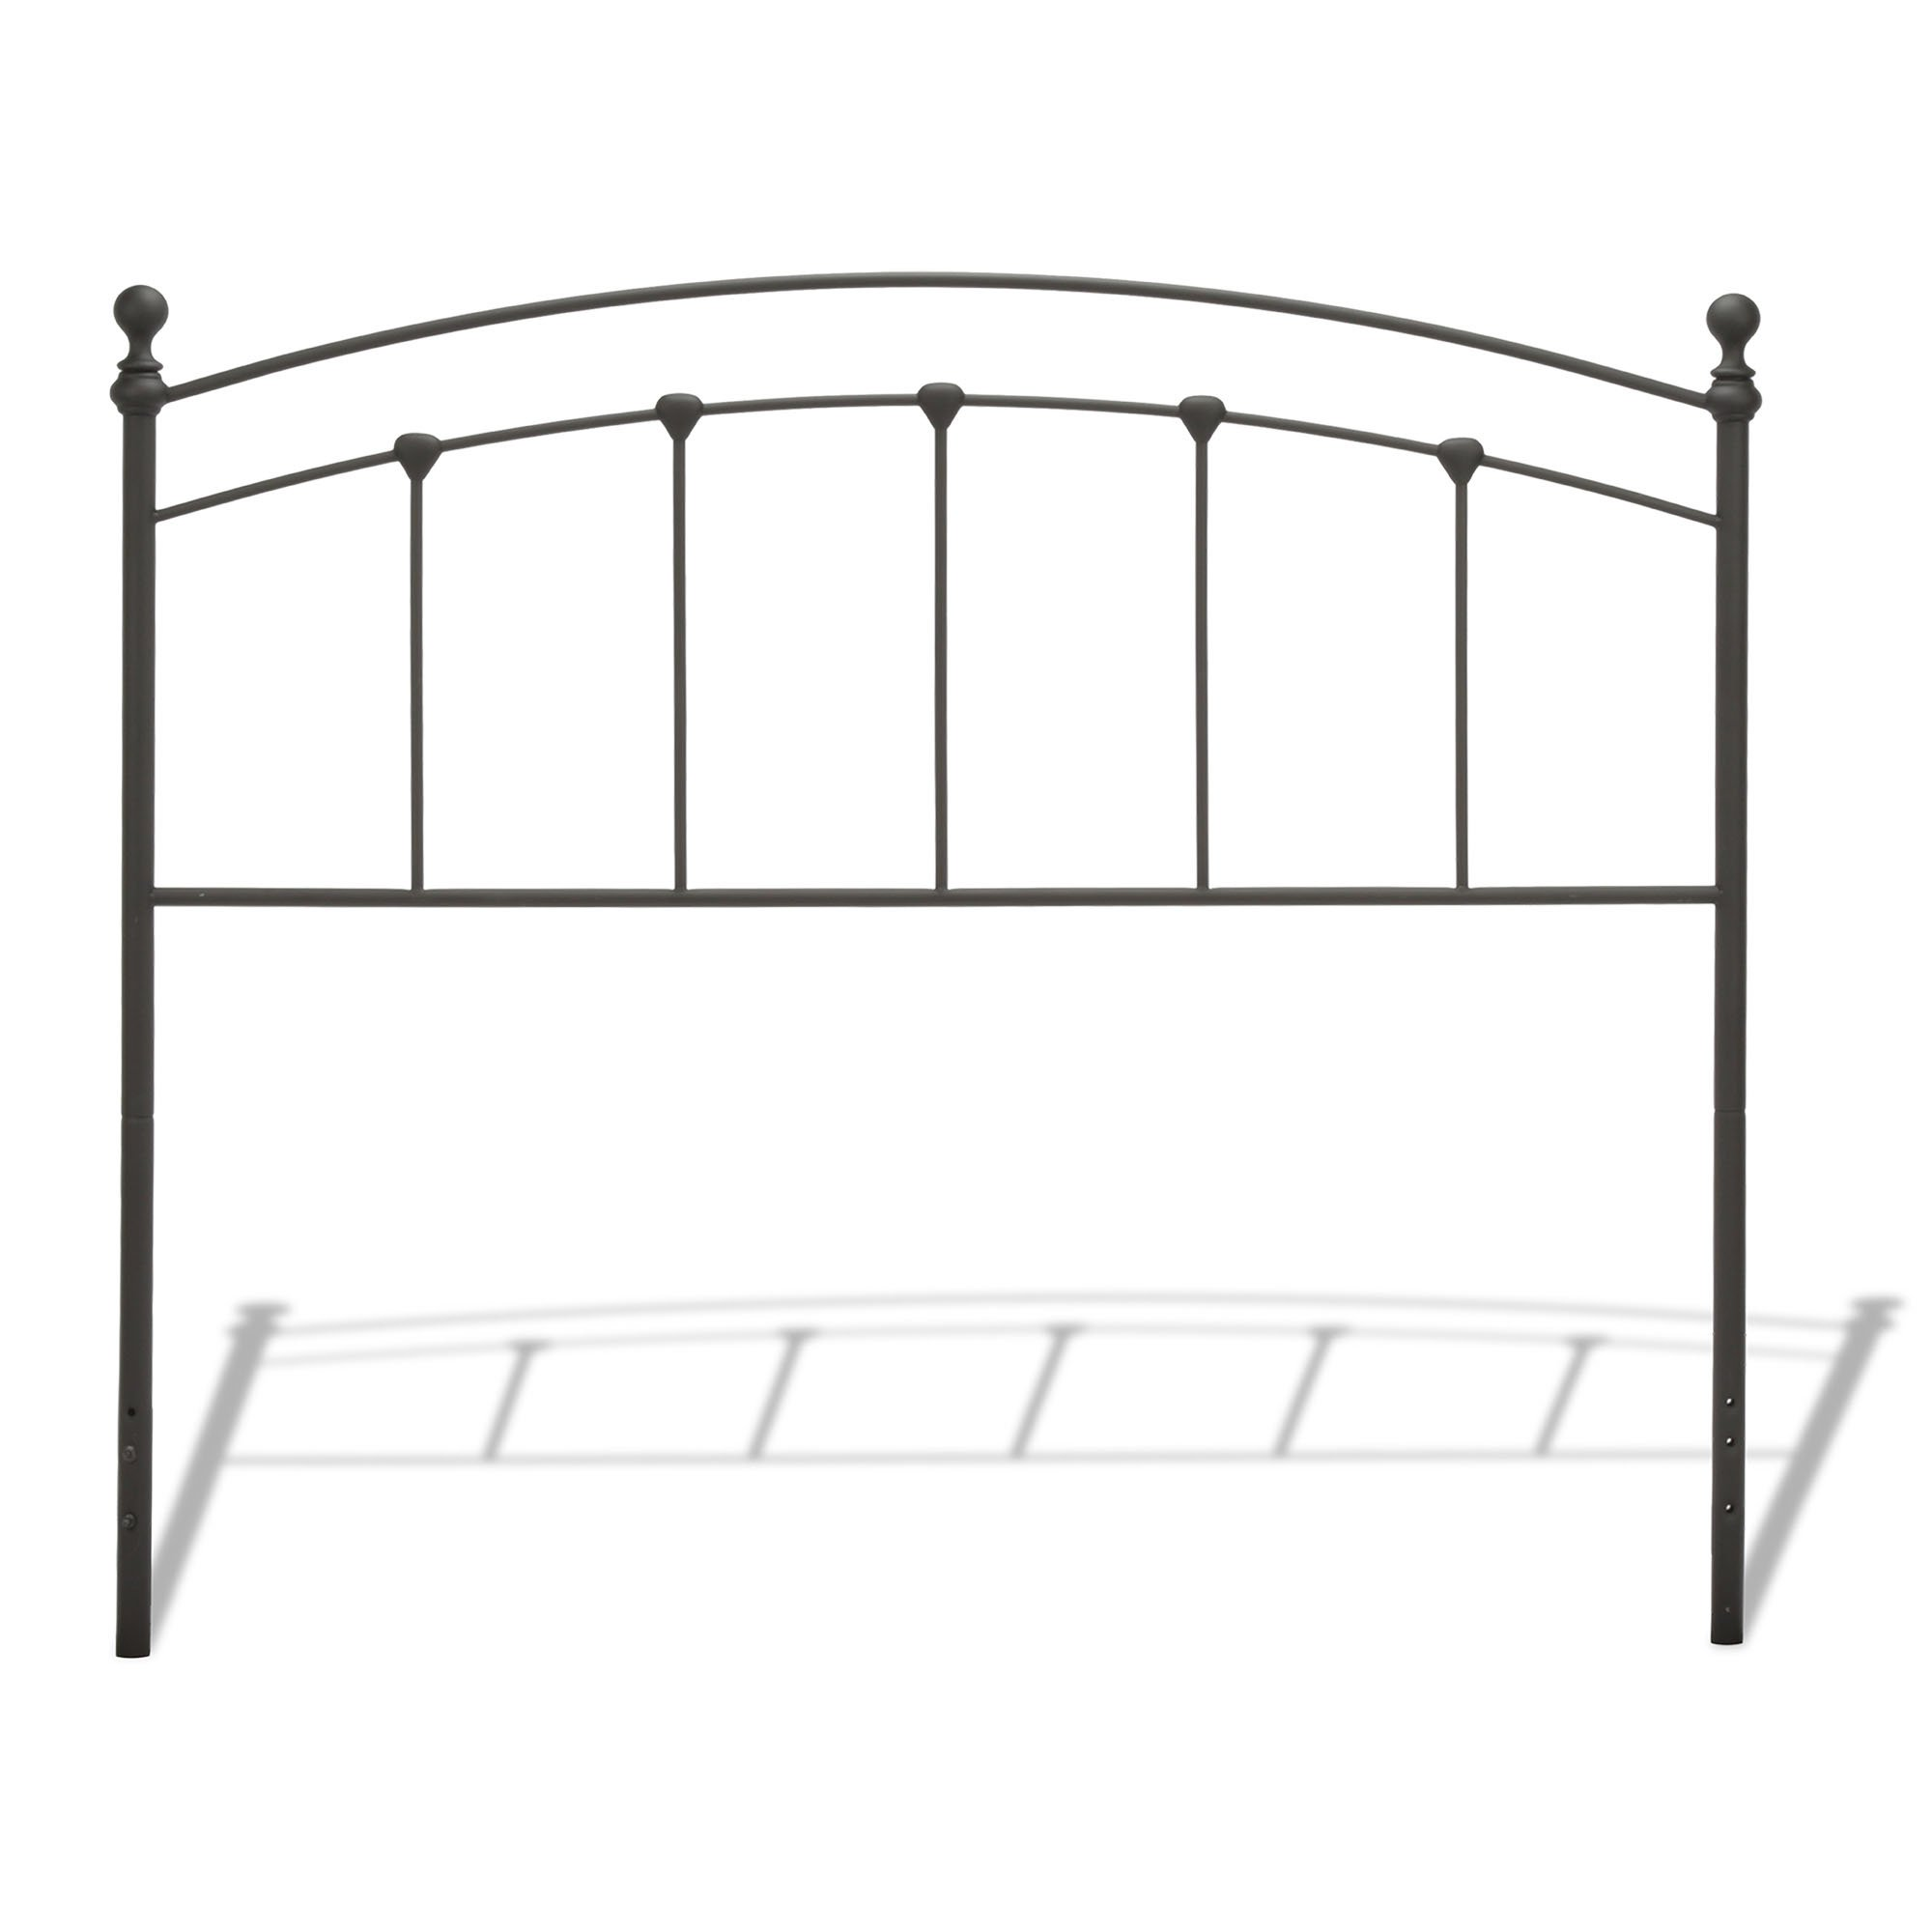 Sanford Metal Headboard with Castings and Round Finial Posts, Matte Black Finish, Twin